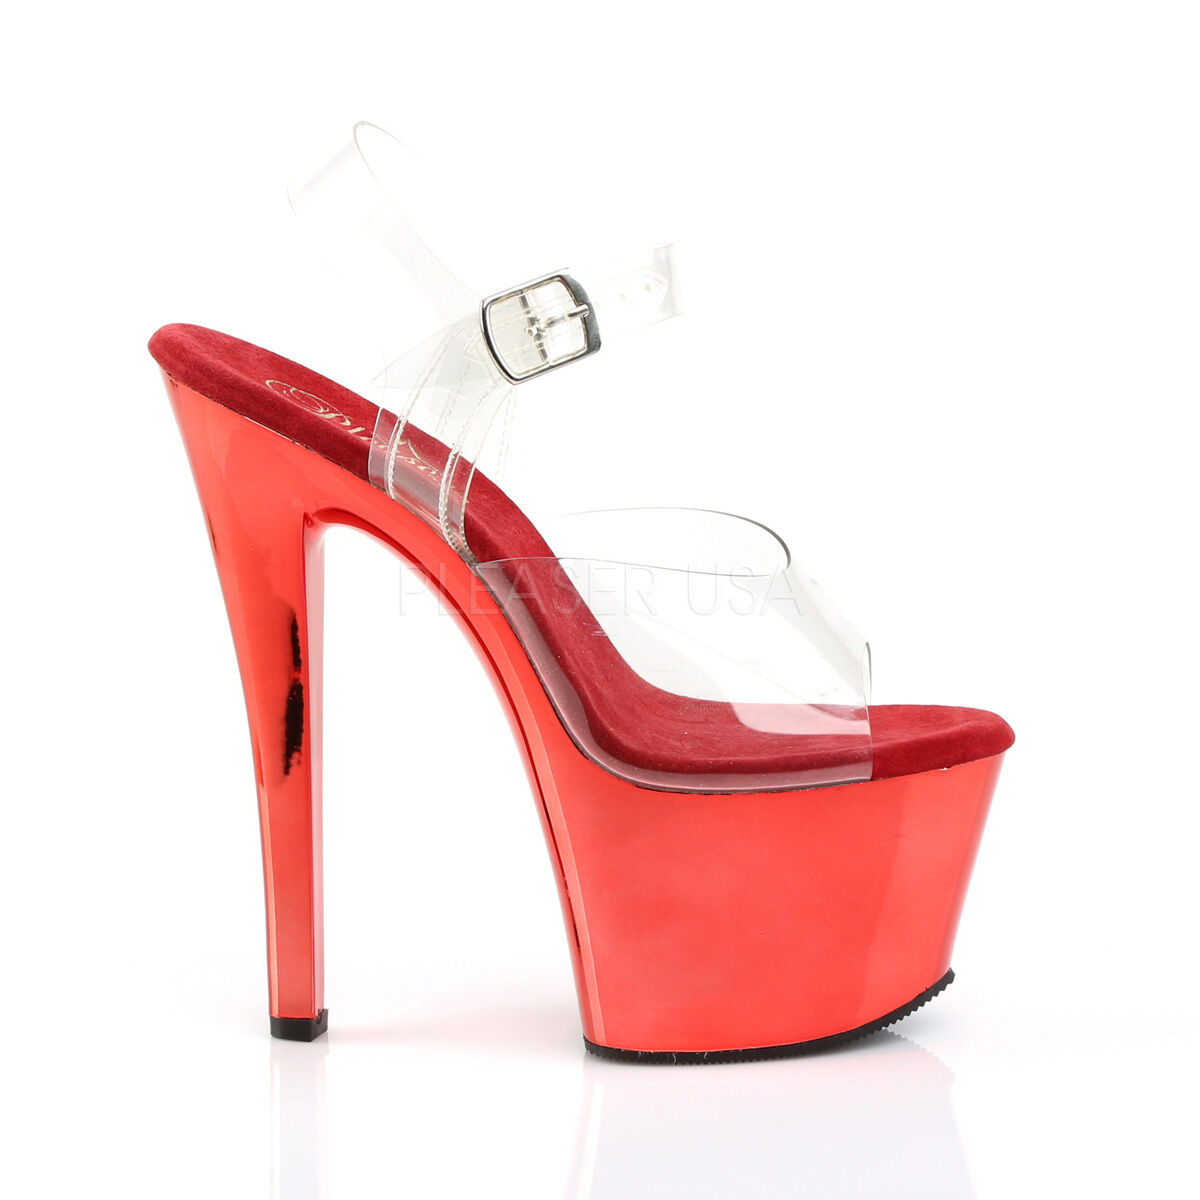 PLEASER Sexy Schuhes Metallic ROT Chrome Platform Pole Dancing 7